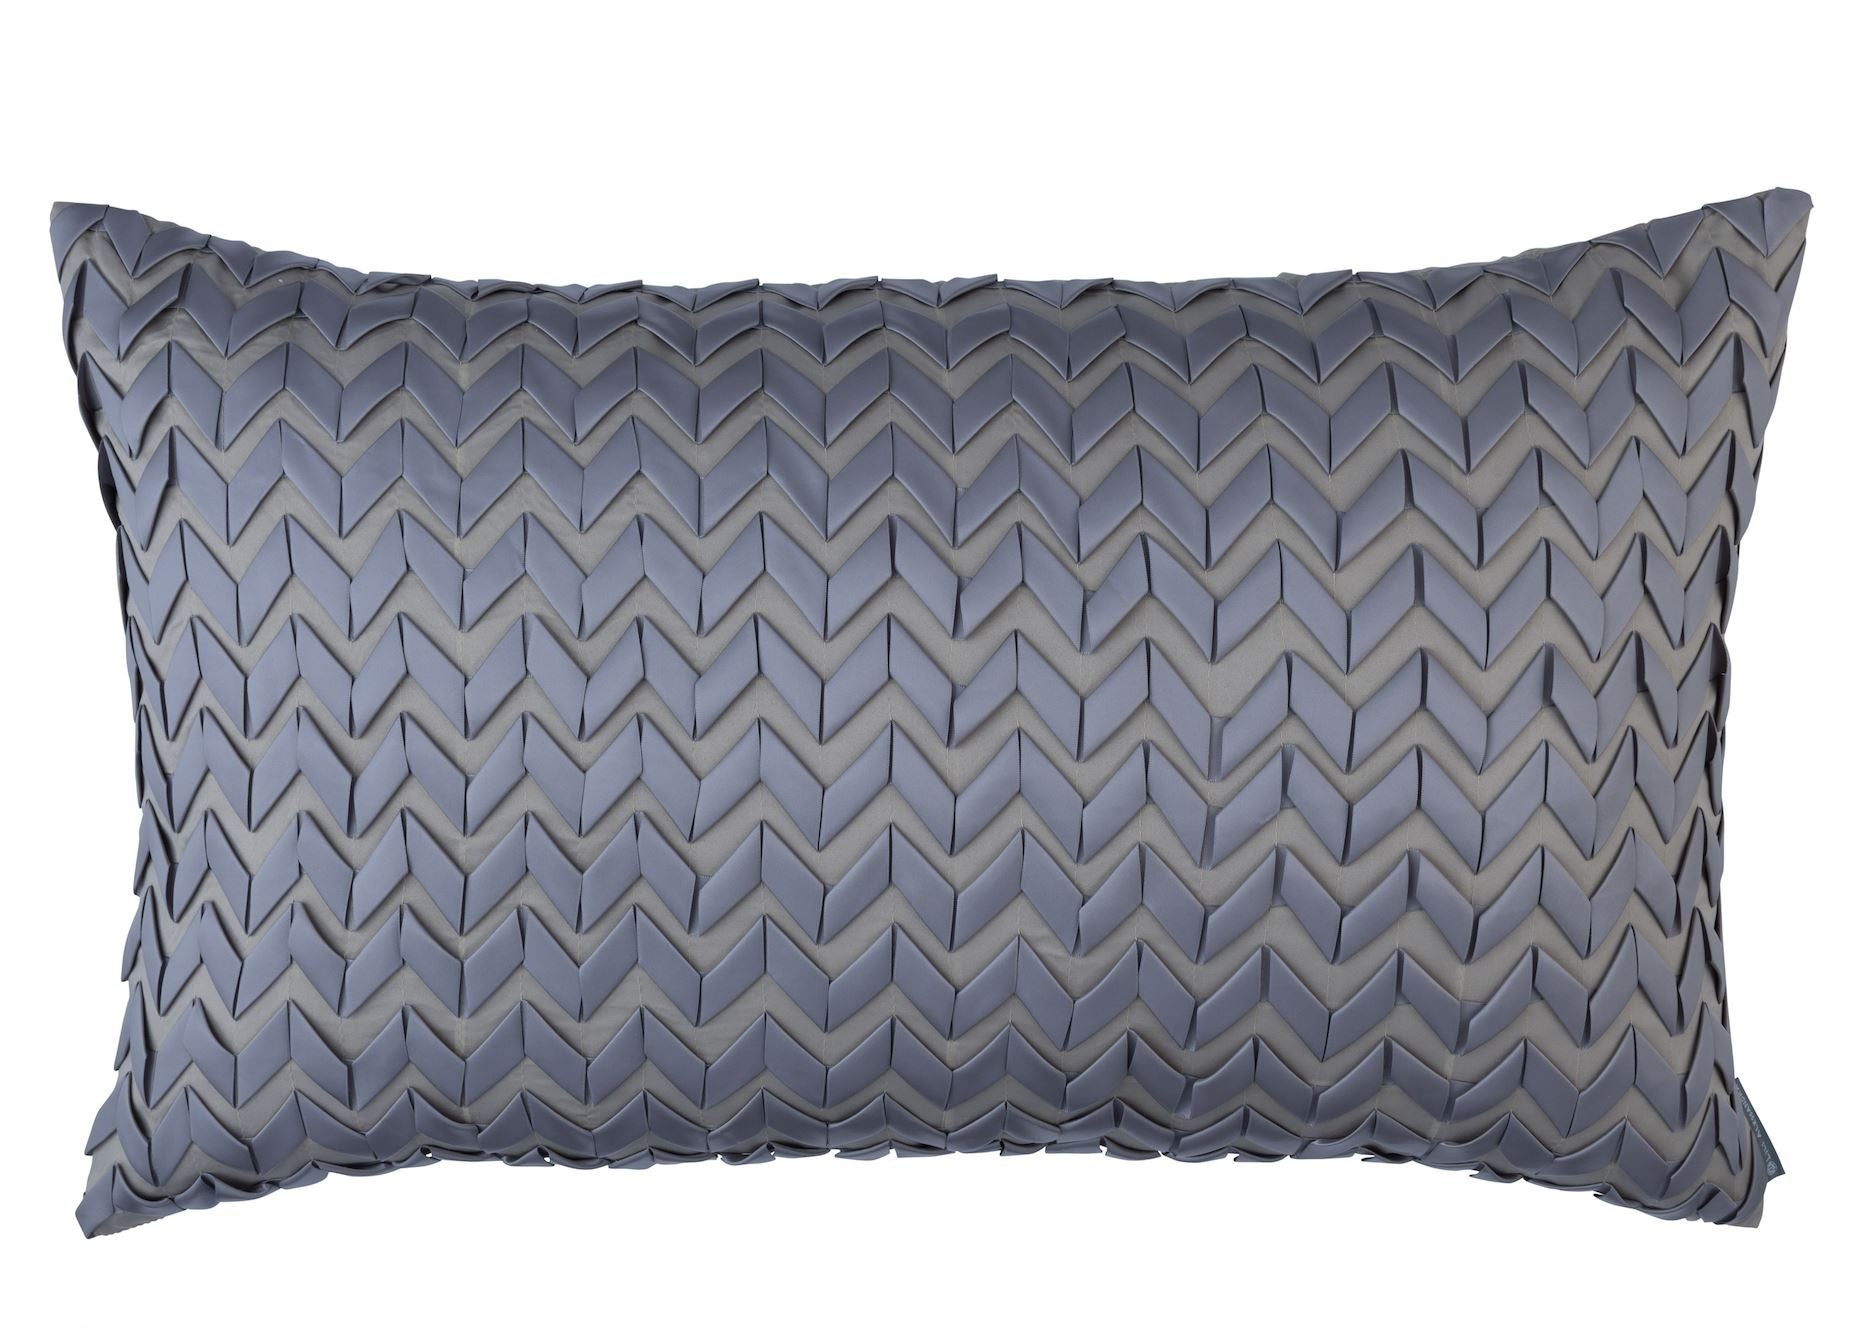 Ultra Pewter 18x30 Lumbar Pillow by Lili Alessandra